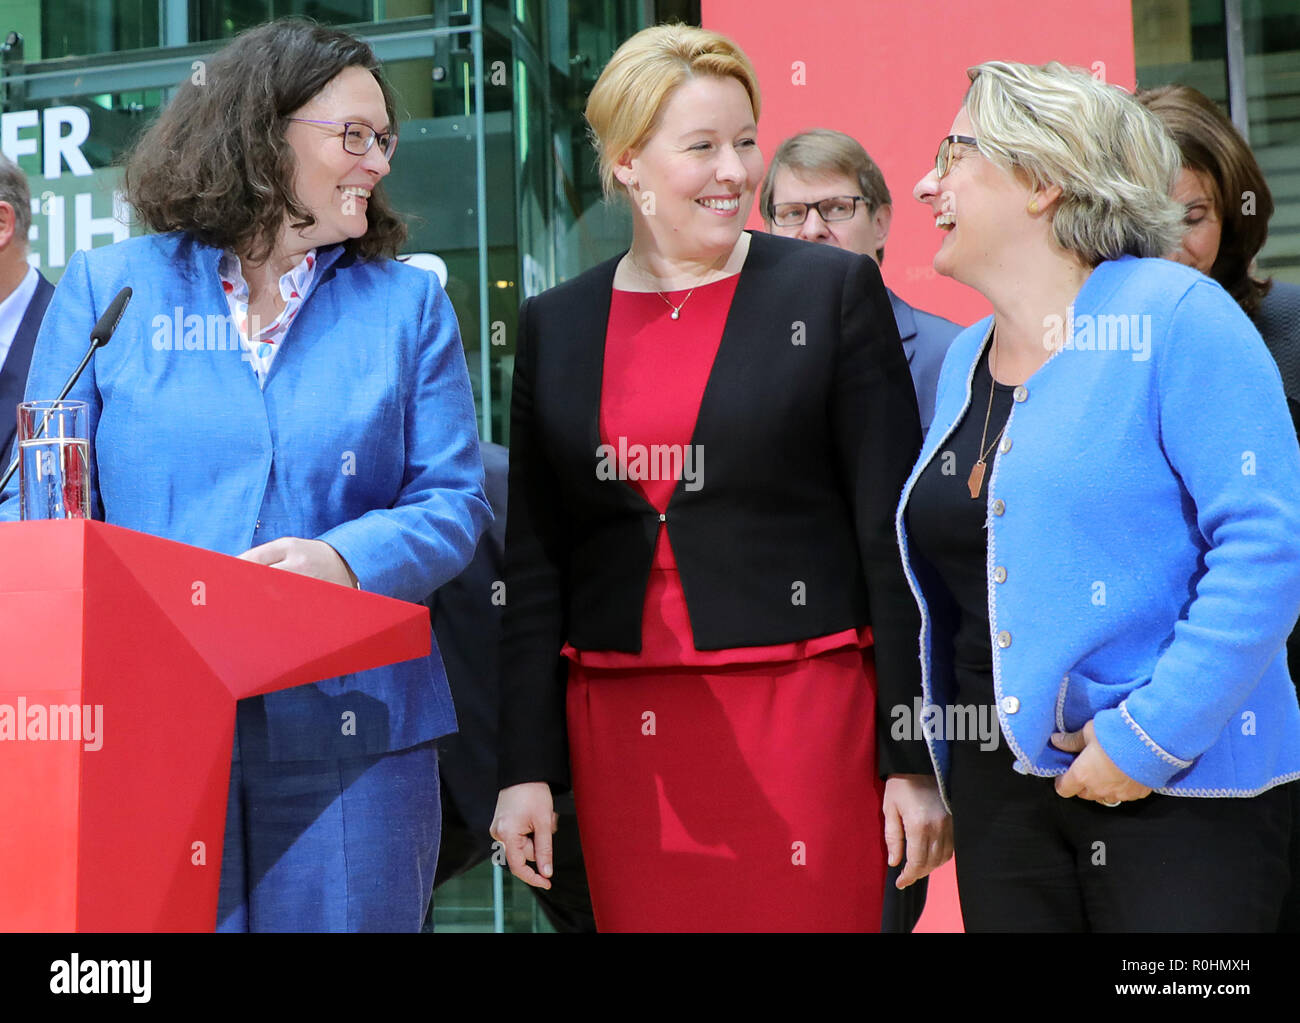 Berlin, Germany. 05th Nov, 2018. Andrea Nahles (l-r), chairwoman of the SPD, will speak after the meeting of the SPD executive board at a press conference in the Willy Brandt House at the end of the closed meeting of the SPD federal leadership. In addition to her, Franziska Giffey, Federal Minister for Family Affairs, Ralf Stegner, Deputy Chairman, Svenja Schulze, Federal Minister for the Environment, and Aydan Özoguz, member of the Executive Committee. Credit: Wolfgang Kumm/dpa/Alamy Live News - Stock Image